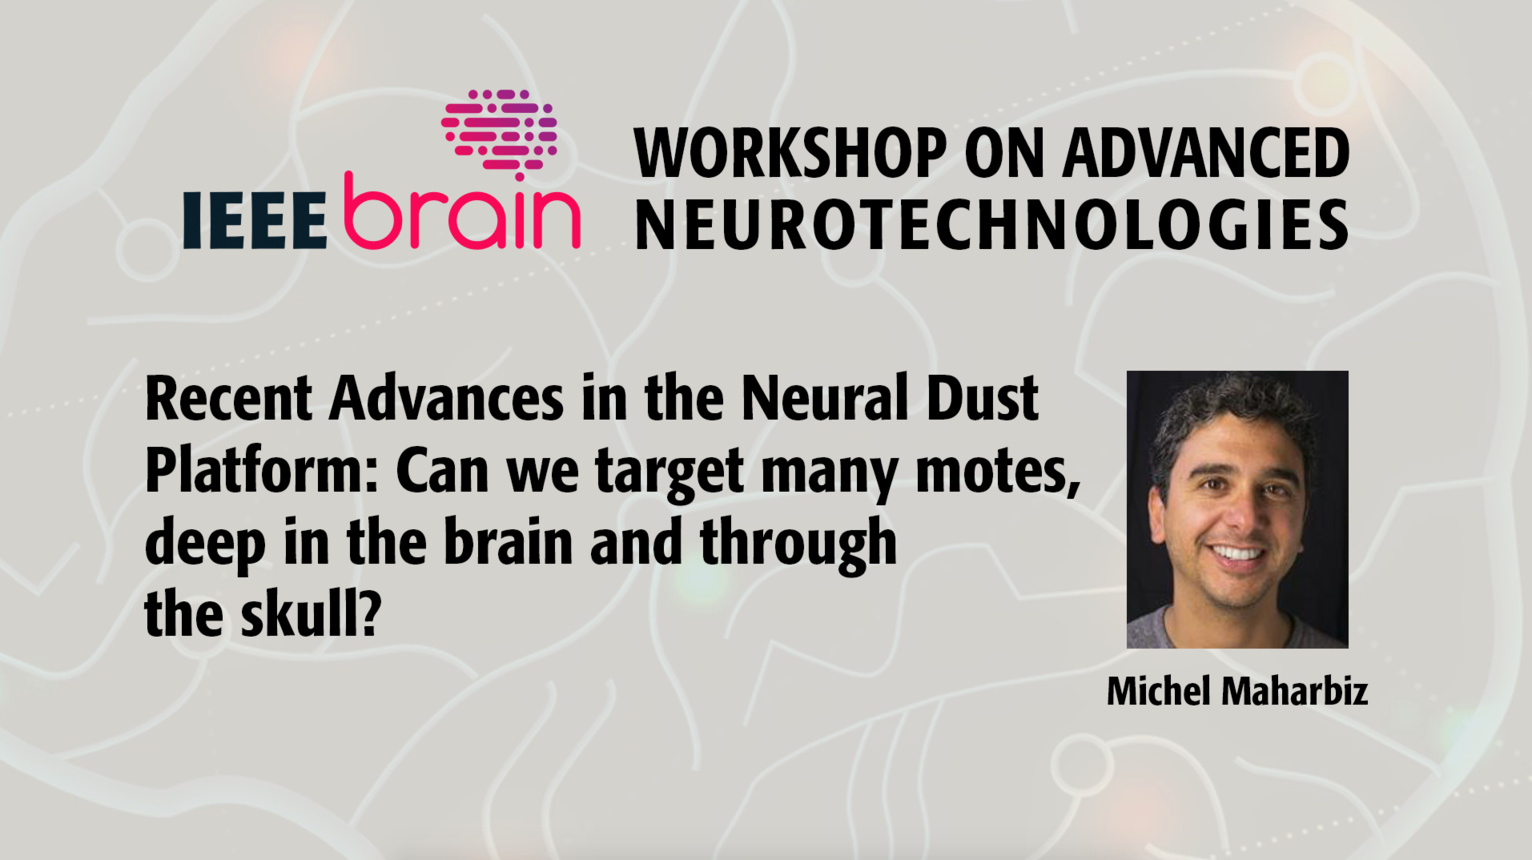 Recent Advances in the Neural Dust Platform - IEEE Brain Workshop 2018